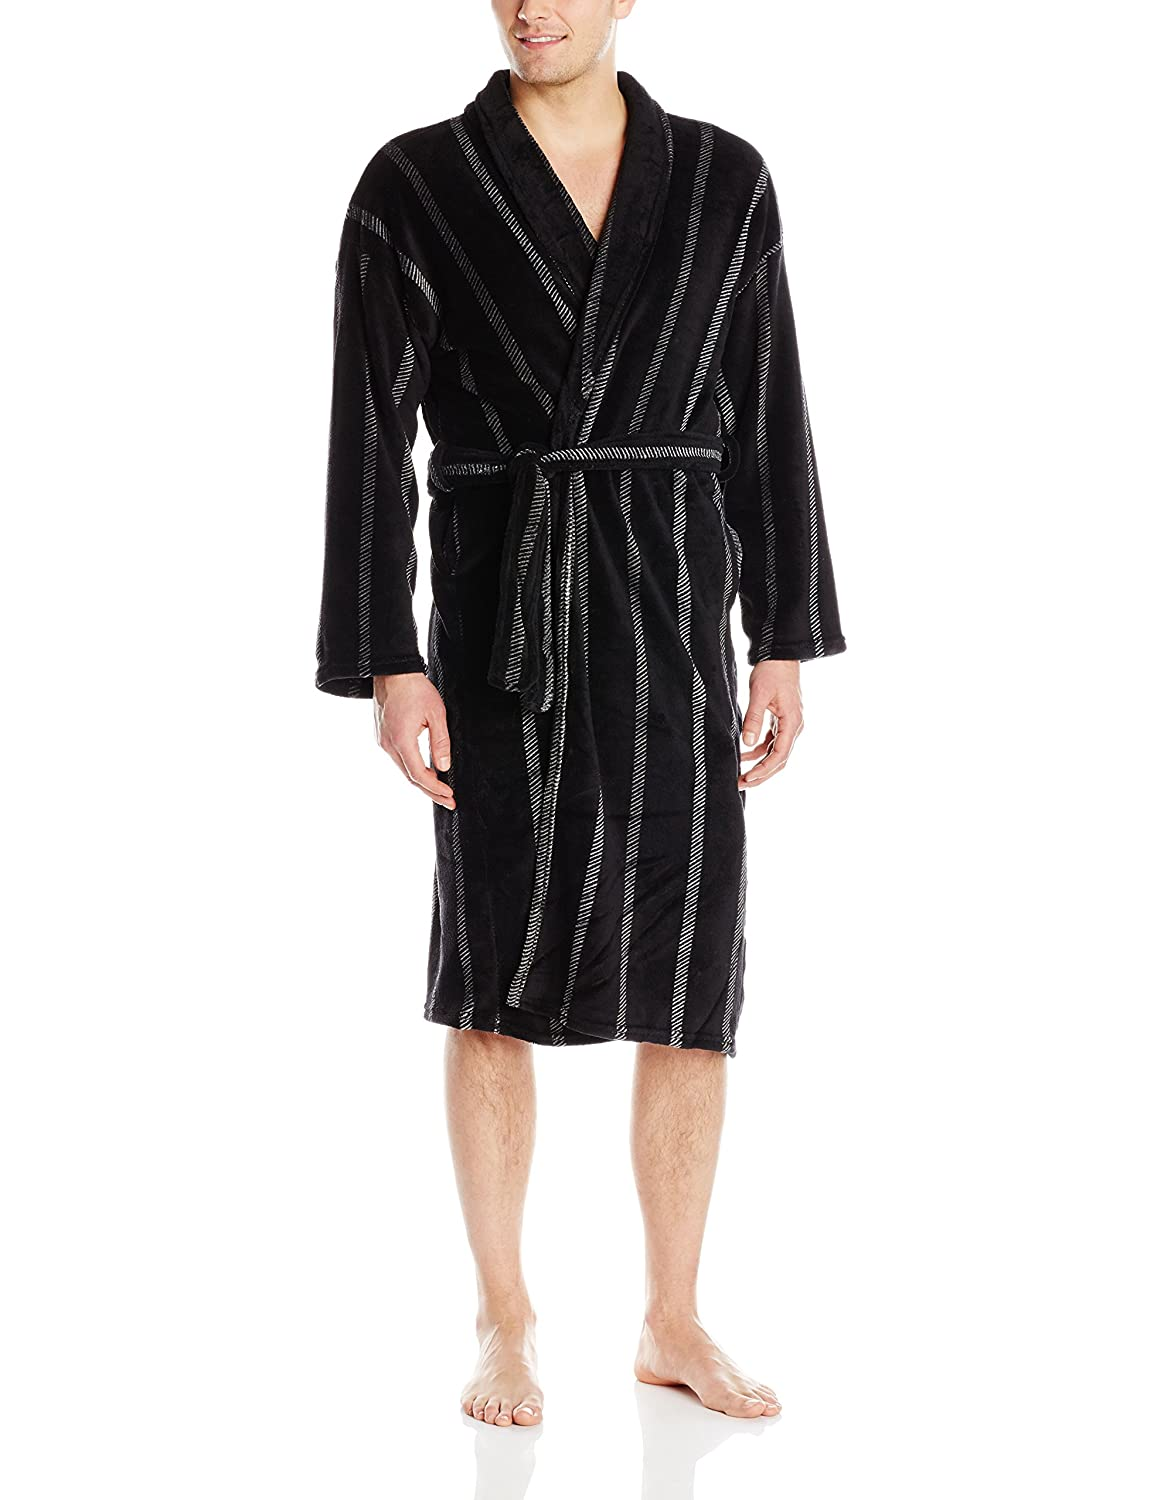 Essentials by Seven Apparel Men's Plaid Plush Bathrobe Black/Blue One Size AMZ-2814